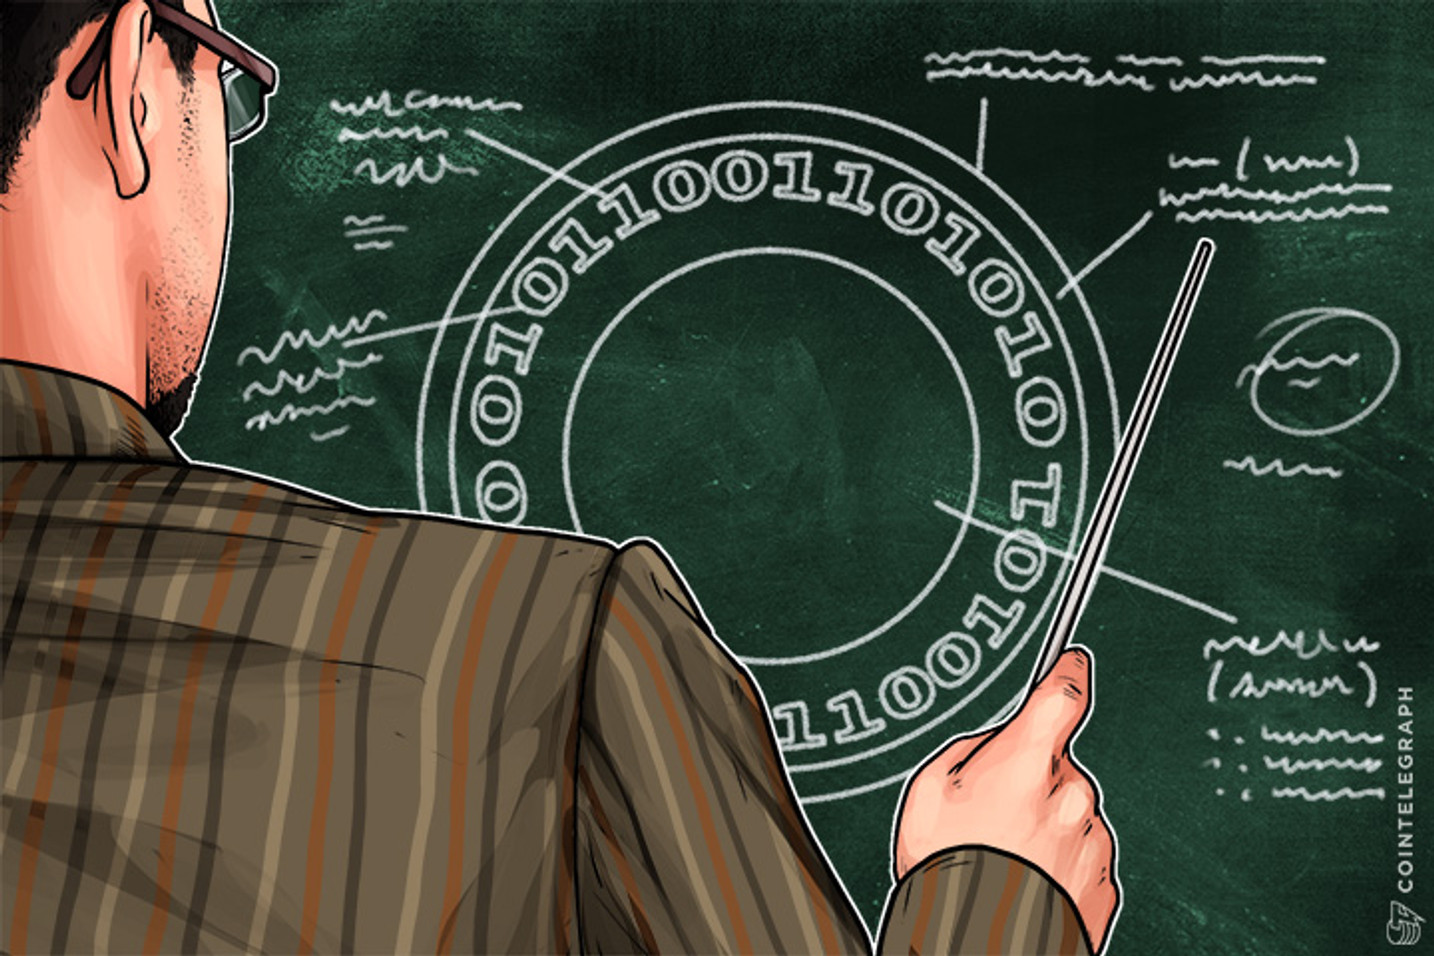 Active Bitcoin Wallets Number Has Grown Four-Fold Over Five Years: Study